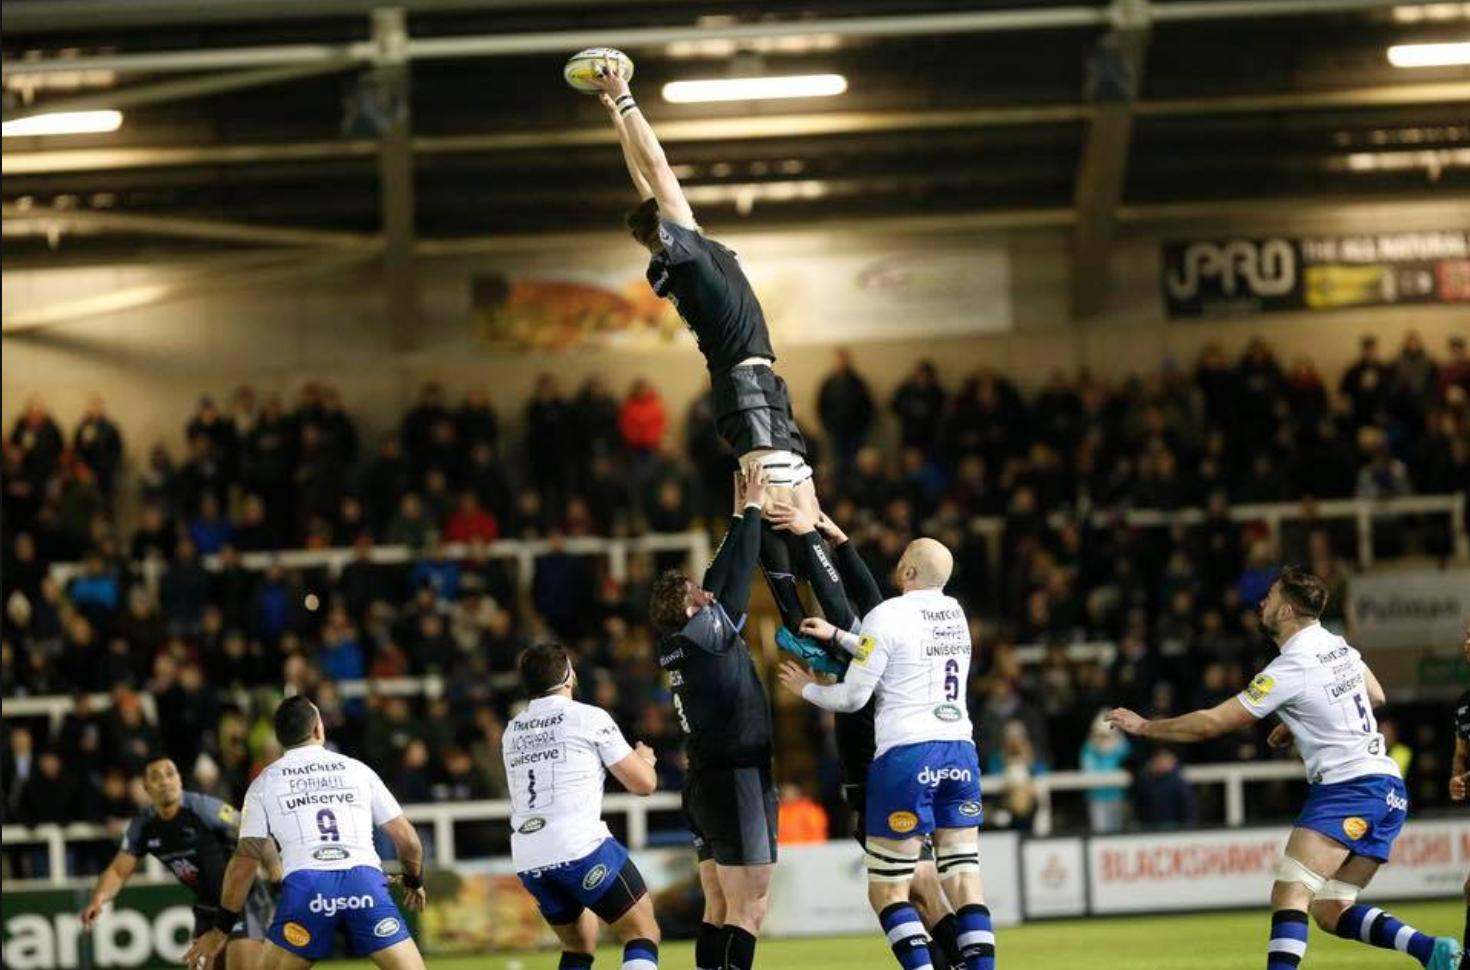 Newcastle Falcons Player